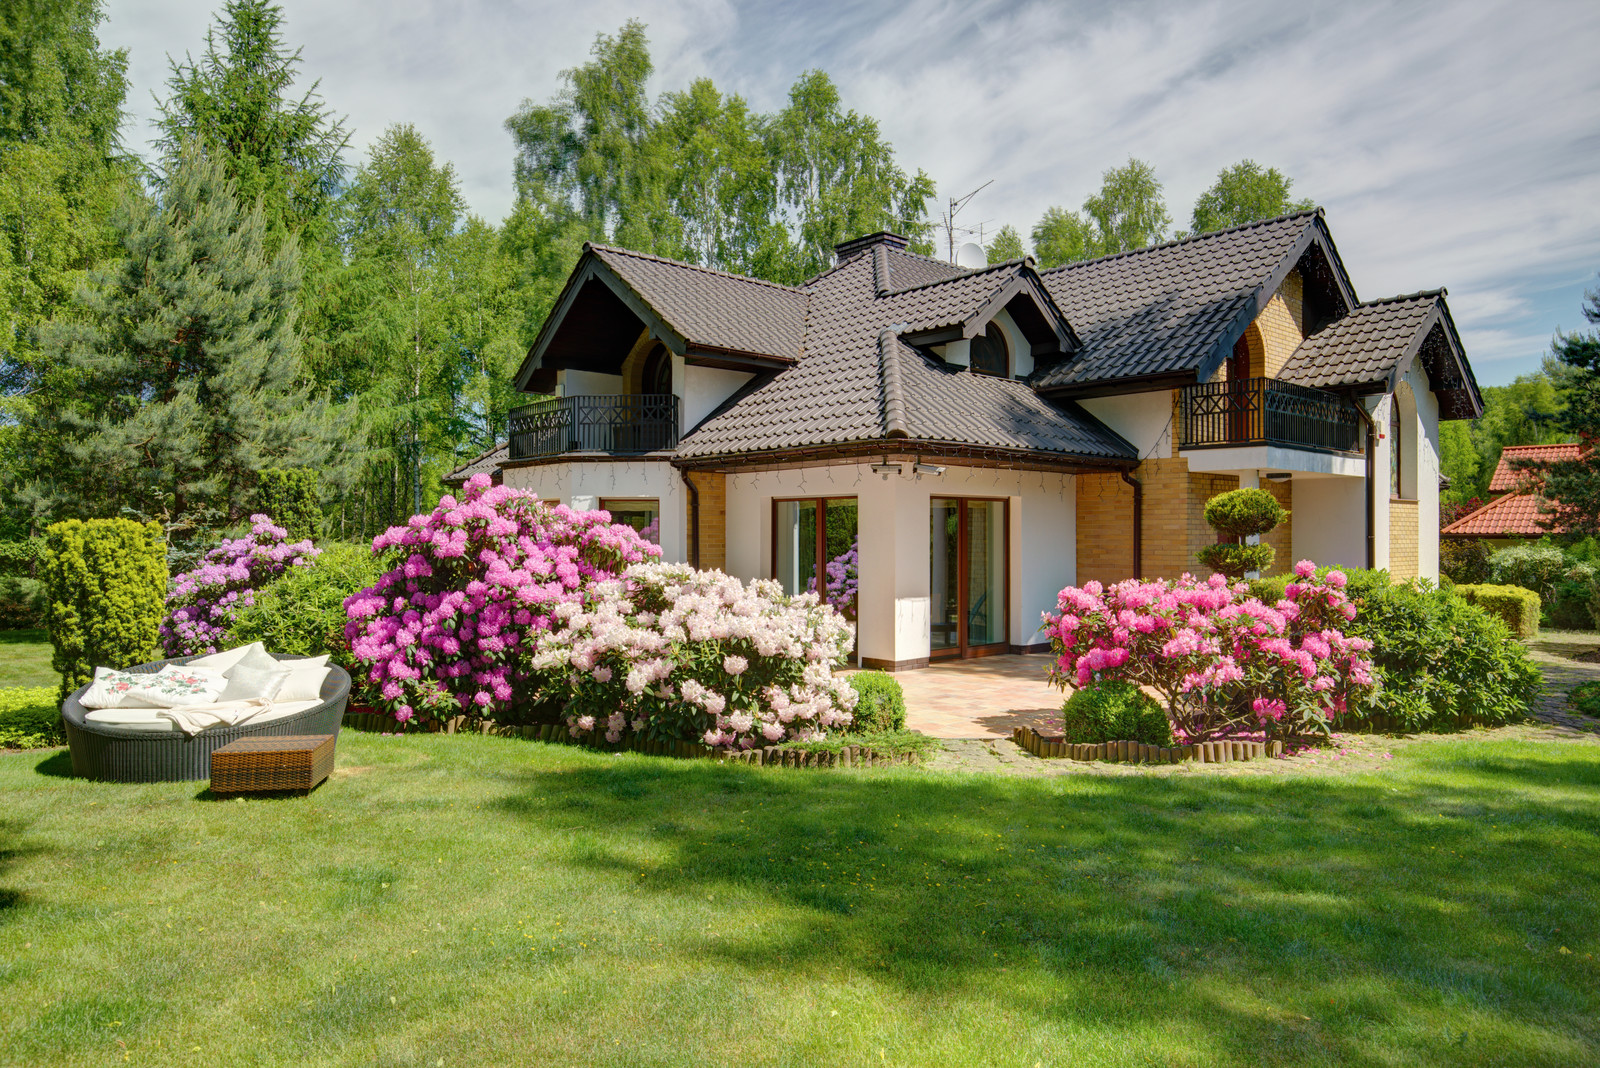 Suburban village house with a beautiful green yard and flowering shrubs